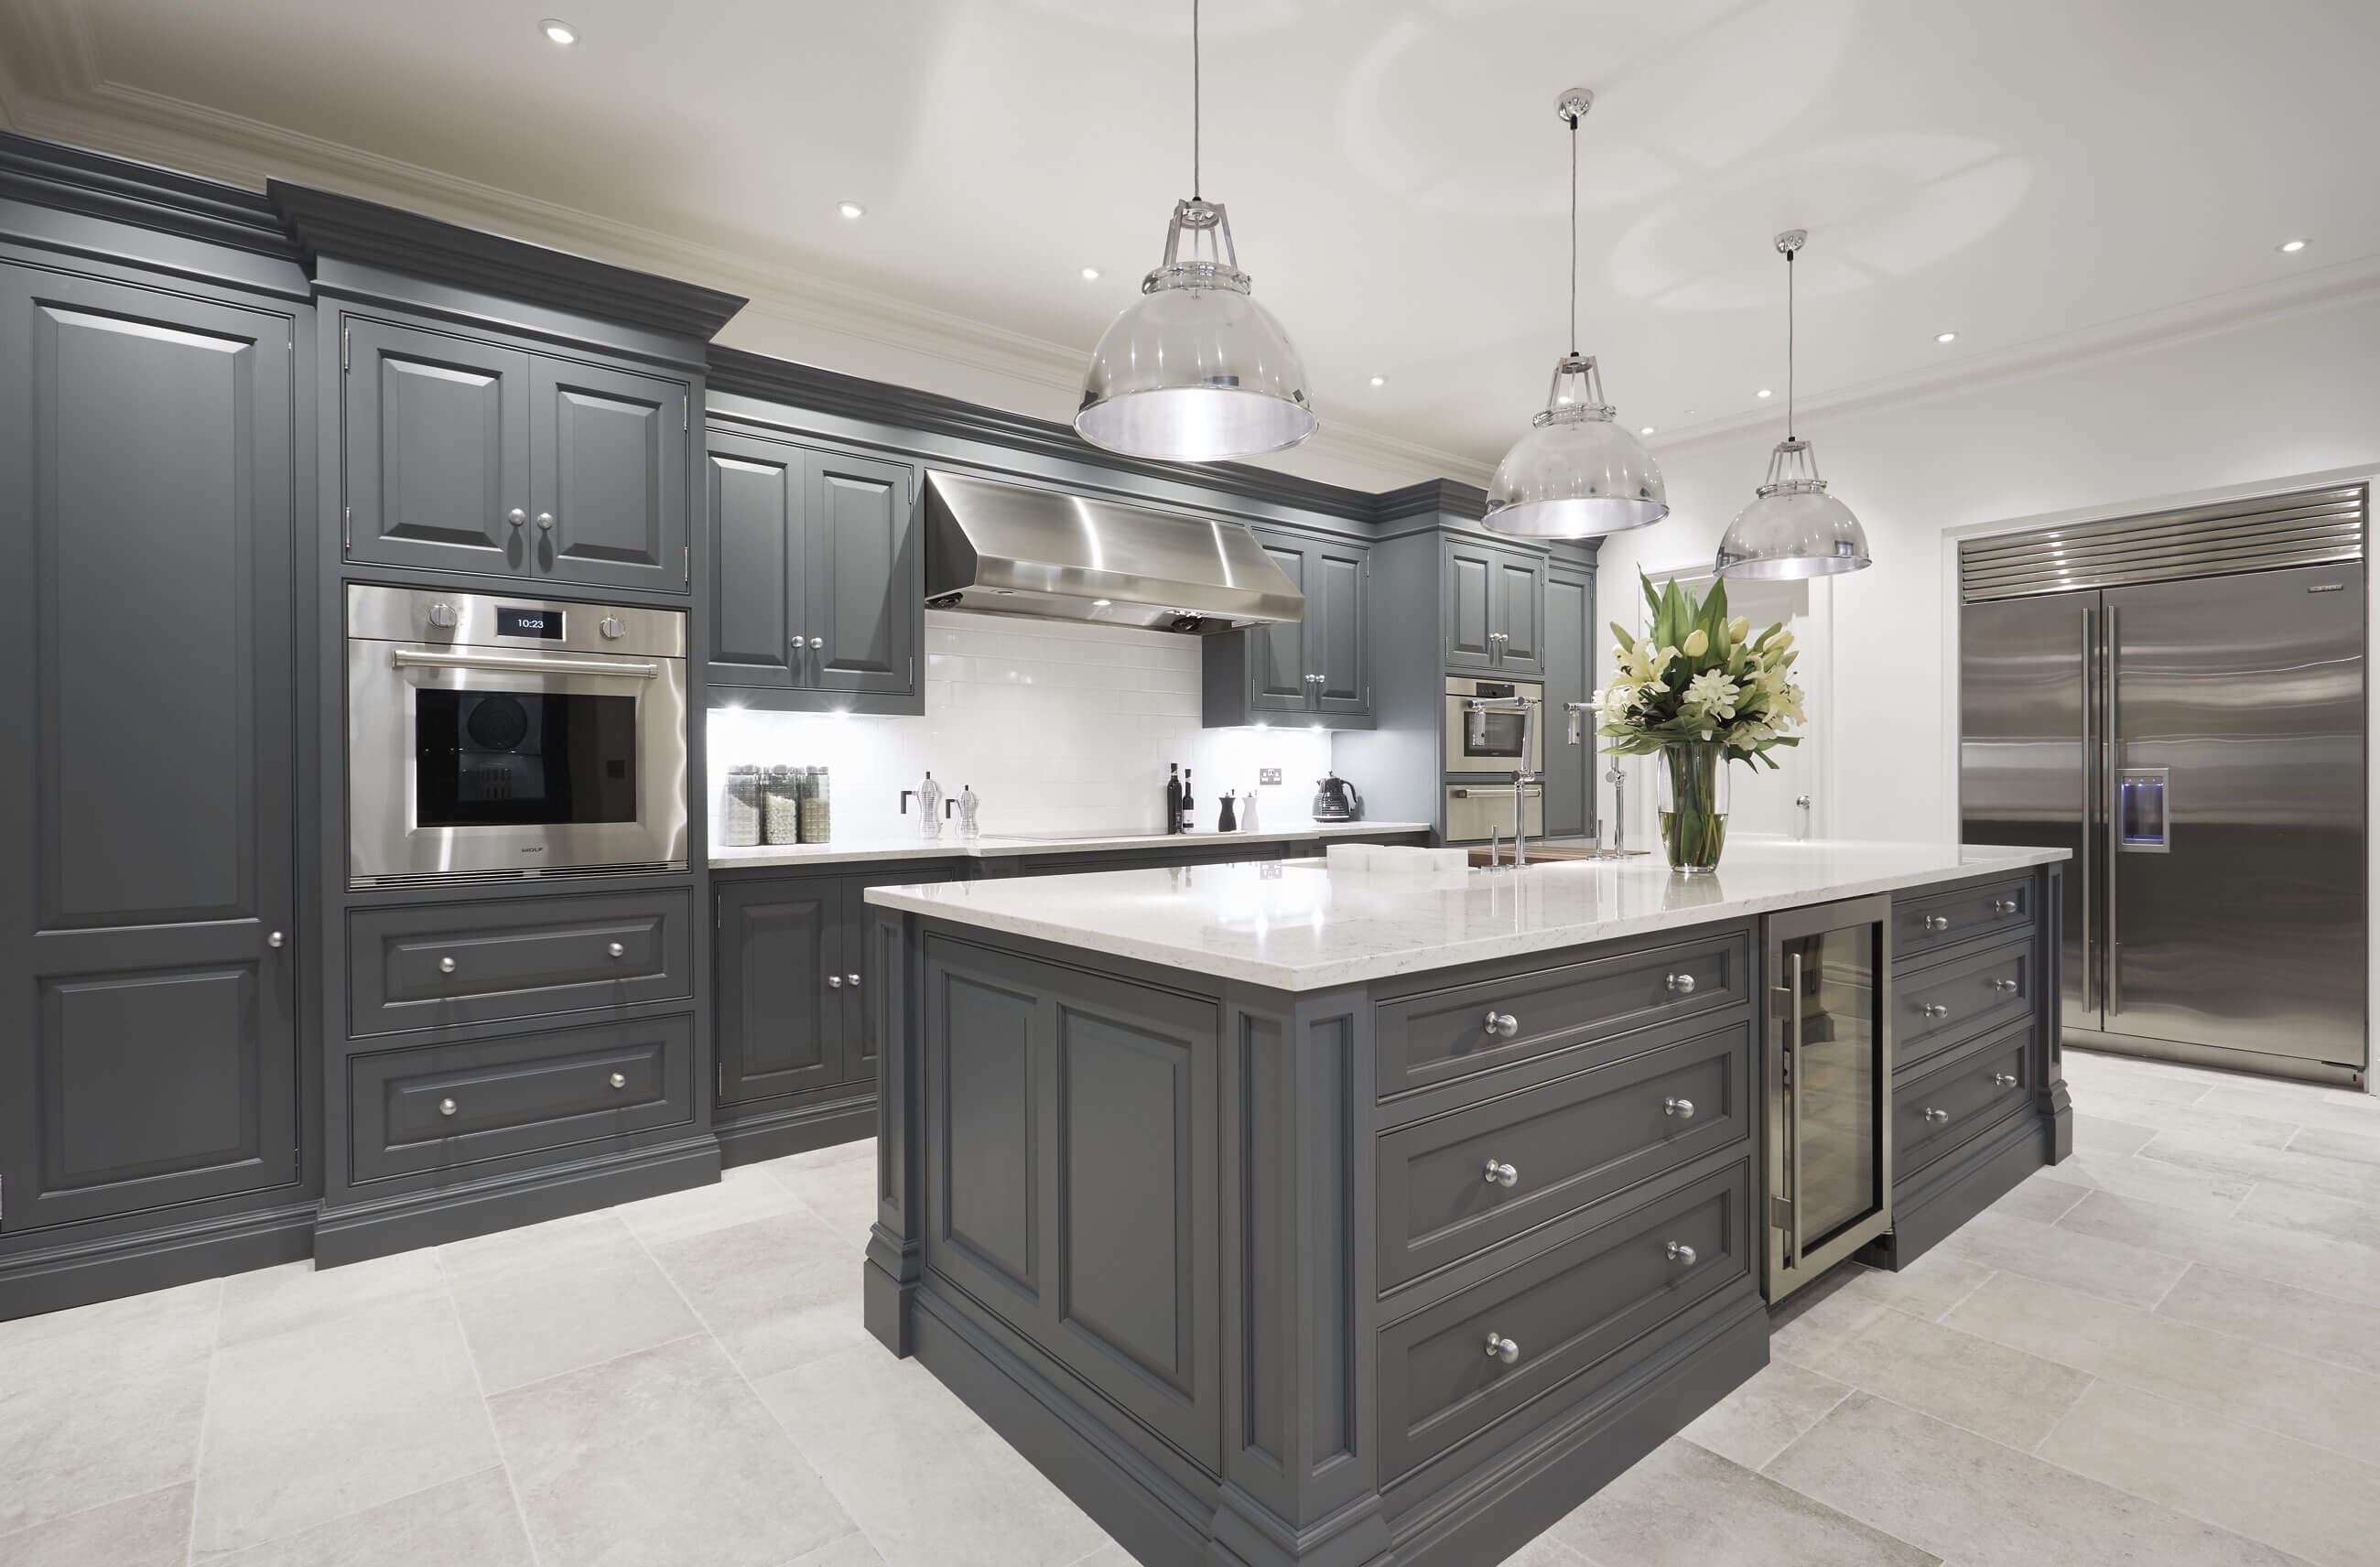 Luxury grey kitchen tom howley for Luxury kitchen